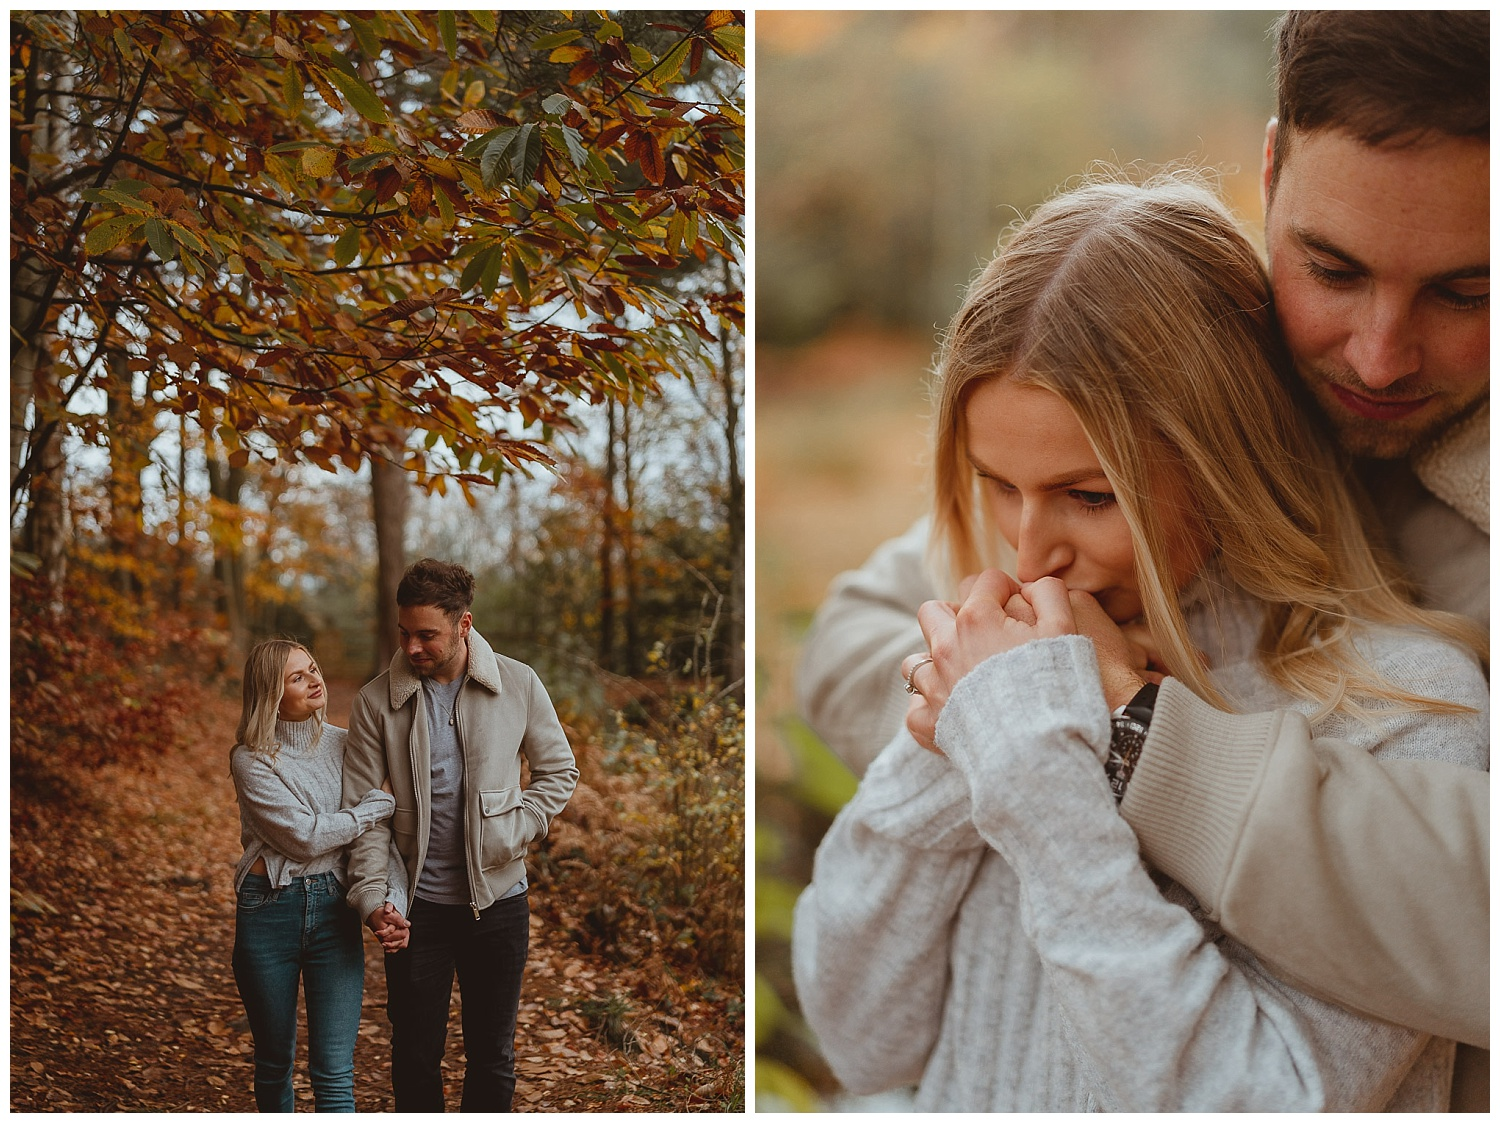 holt engagement session country park norfolk